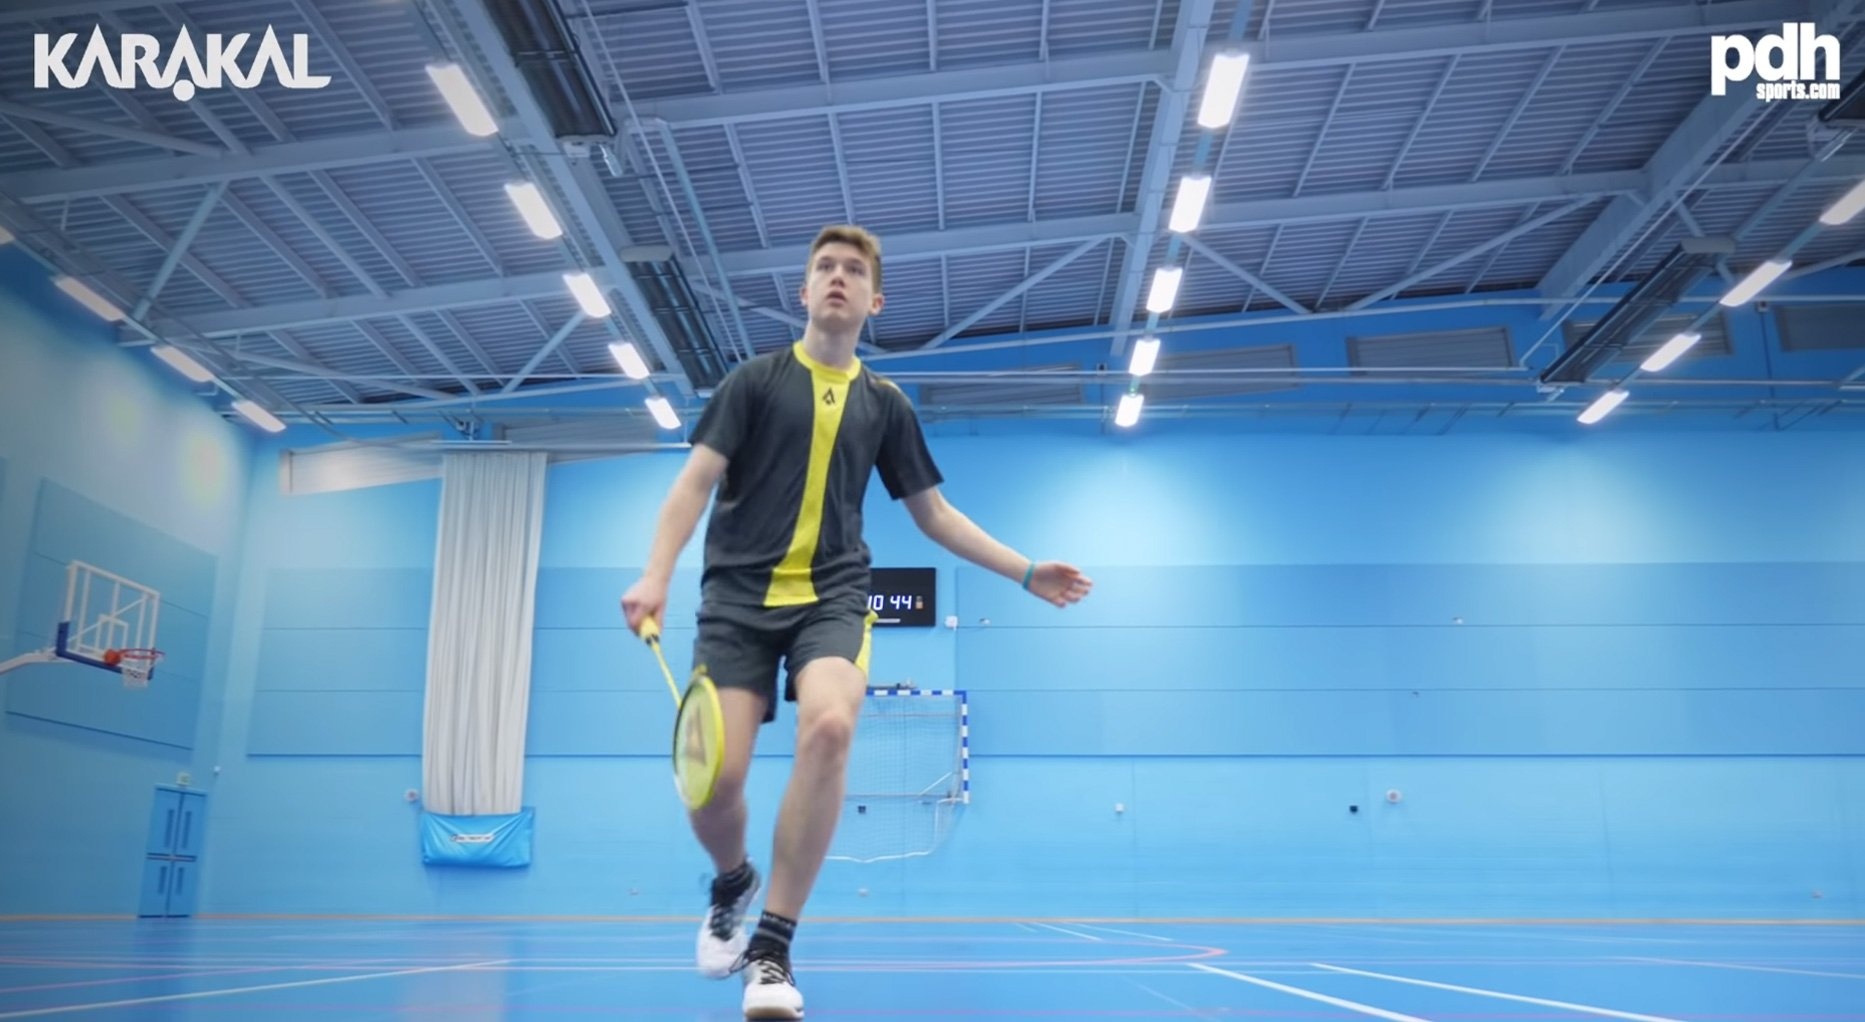 Part One: PDHSPORTS.COM meets U19 English National Champion and Karakal Badminton player Ethan Rose.